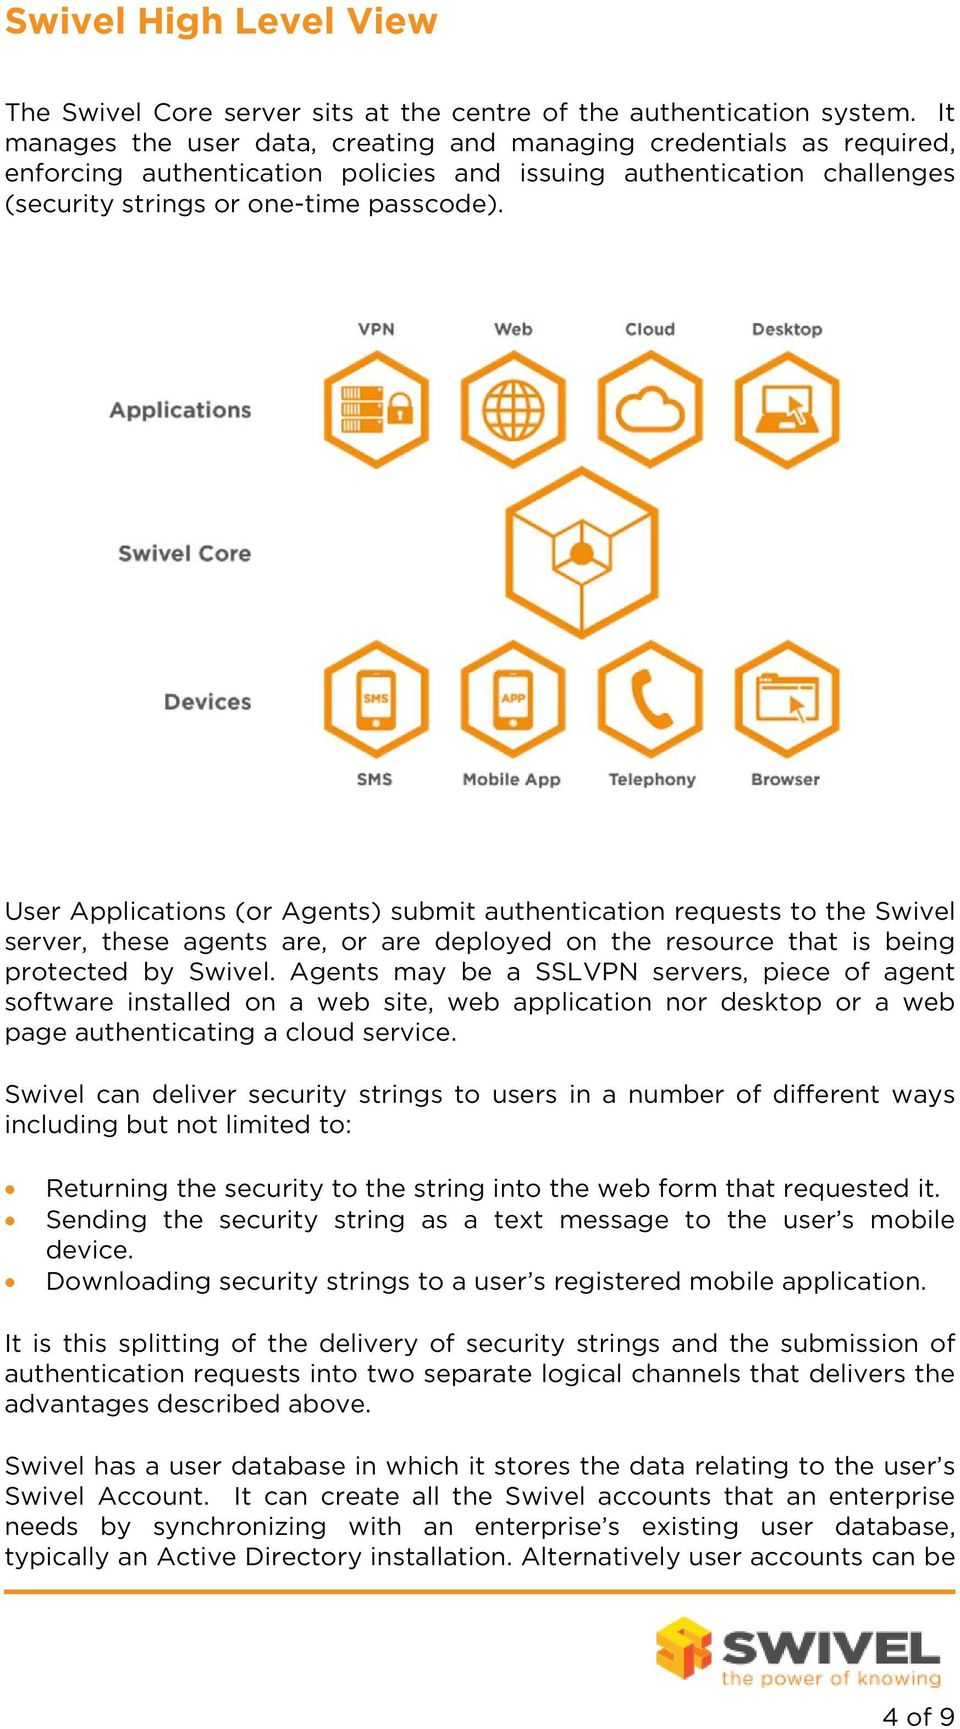 User Applications (or Agents) submit authentication requests to the Swivel server, these agents are, or are deployed on the resource that is being protected by Swivel.